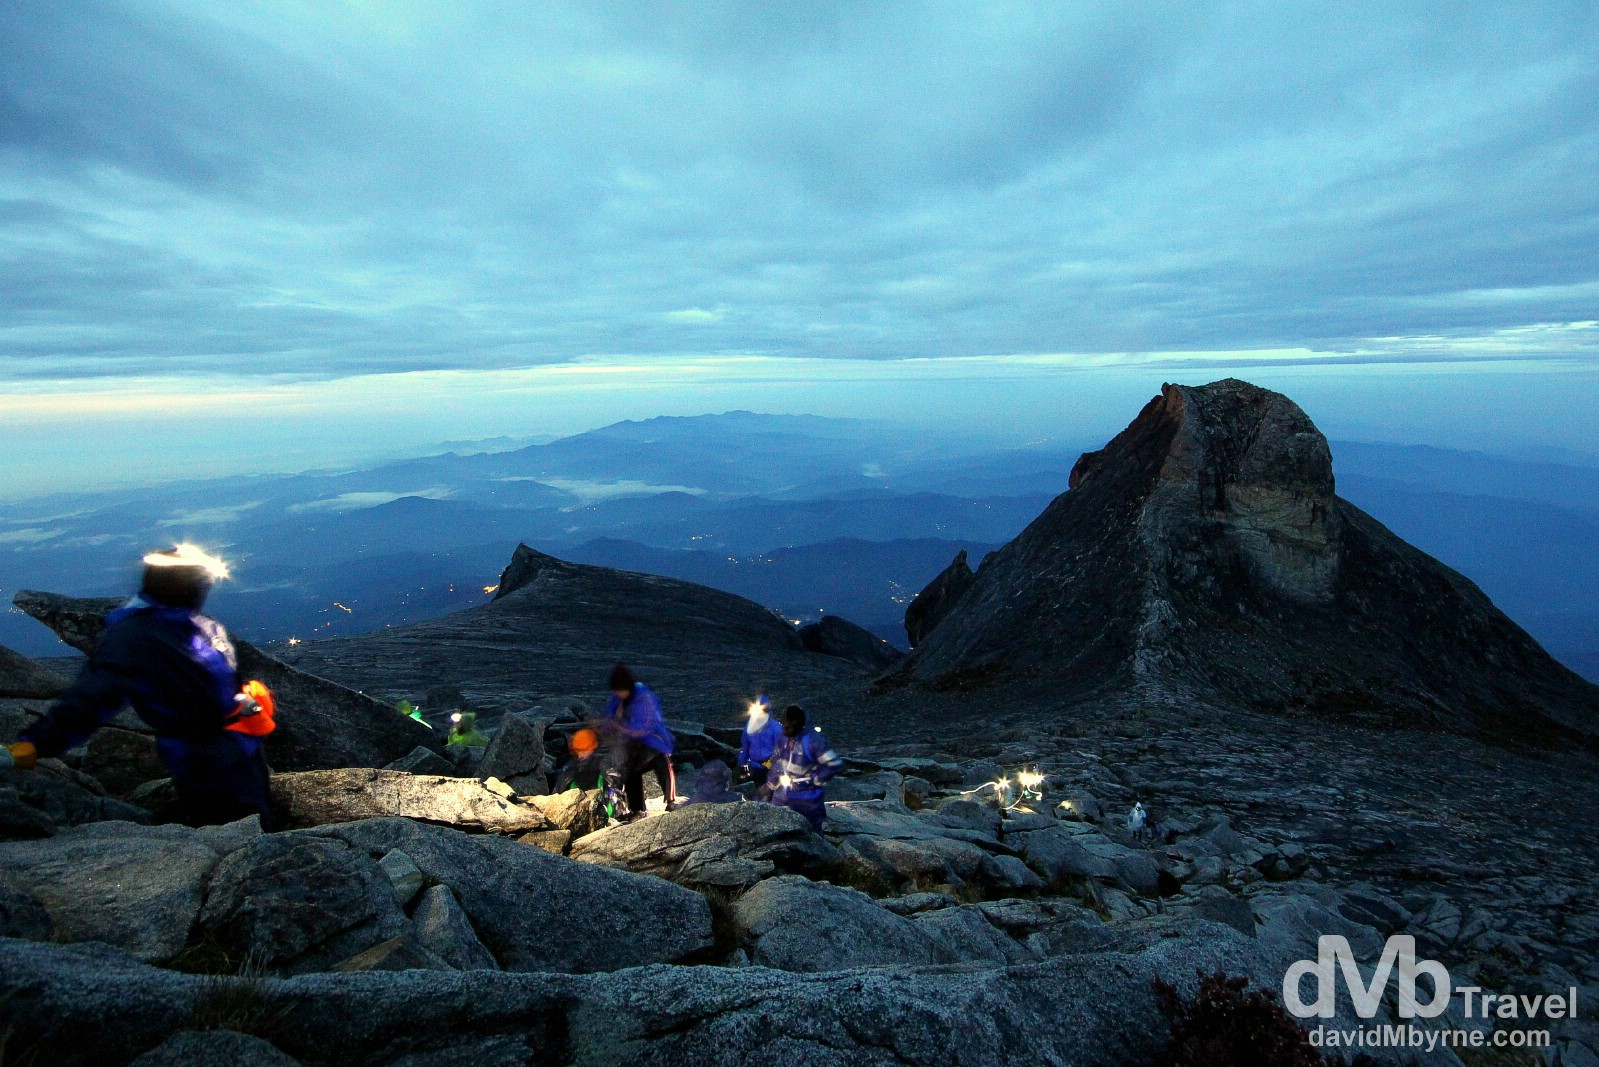 Climbers approaching the 4,095m (13,435ft) summit of Mount Kinabalu, the highest point on Borneo, the world's third largest island. Sabah, Malaysian Borneo. June 23rd 2012